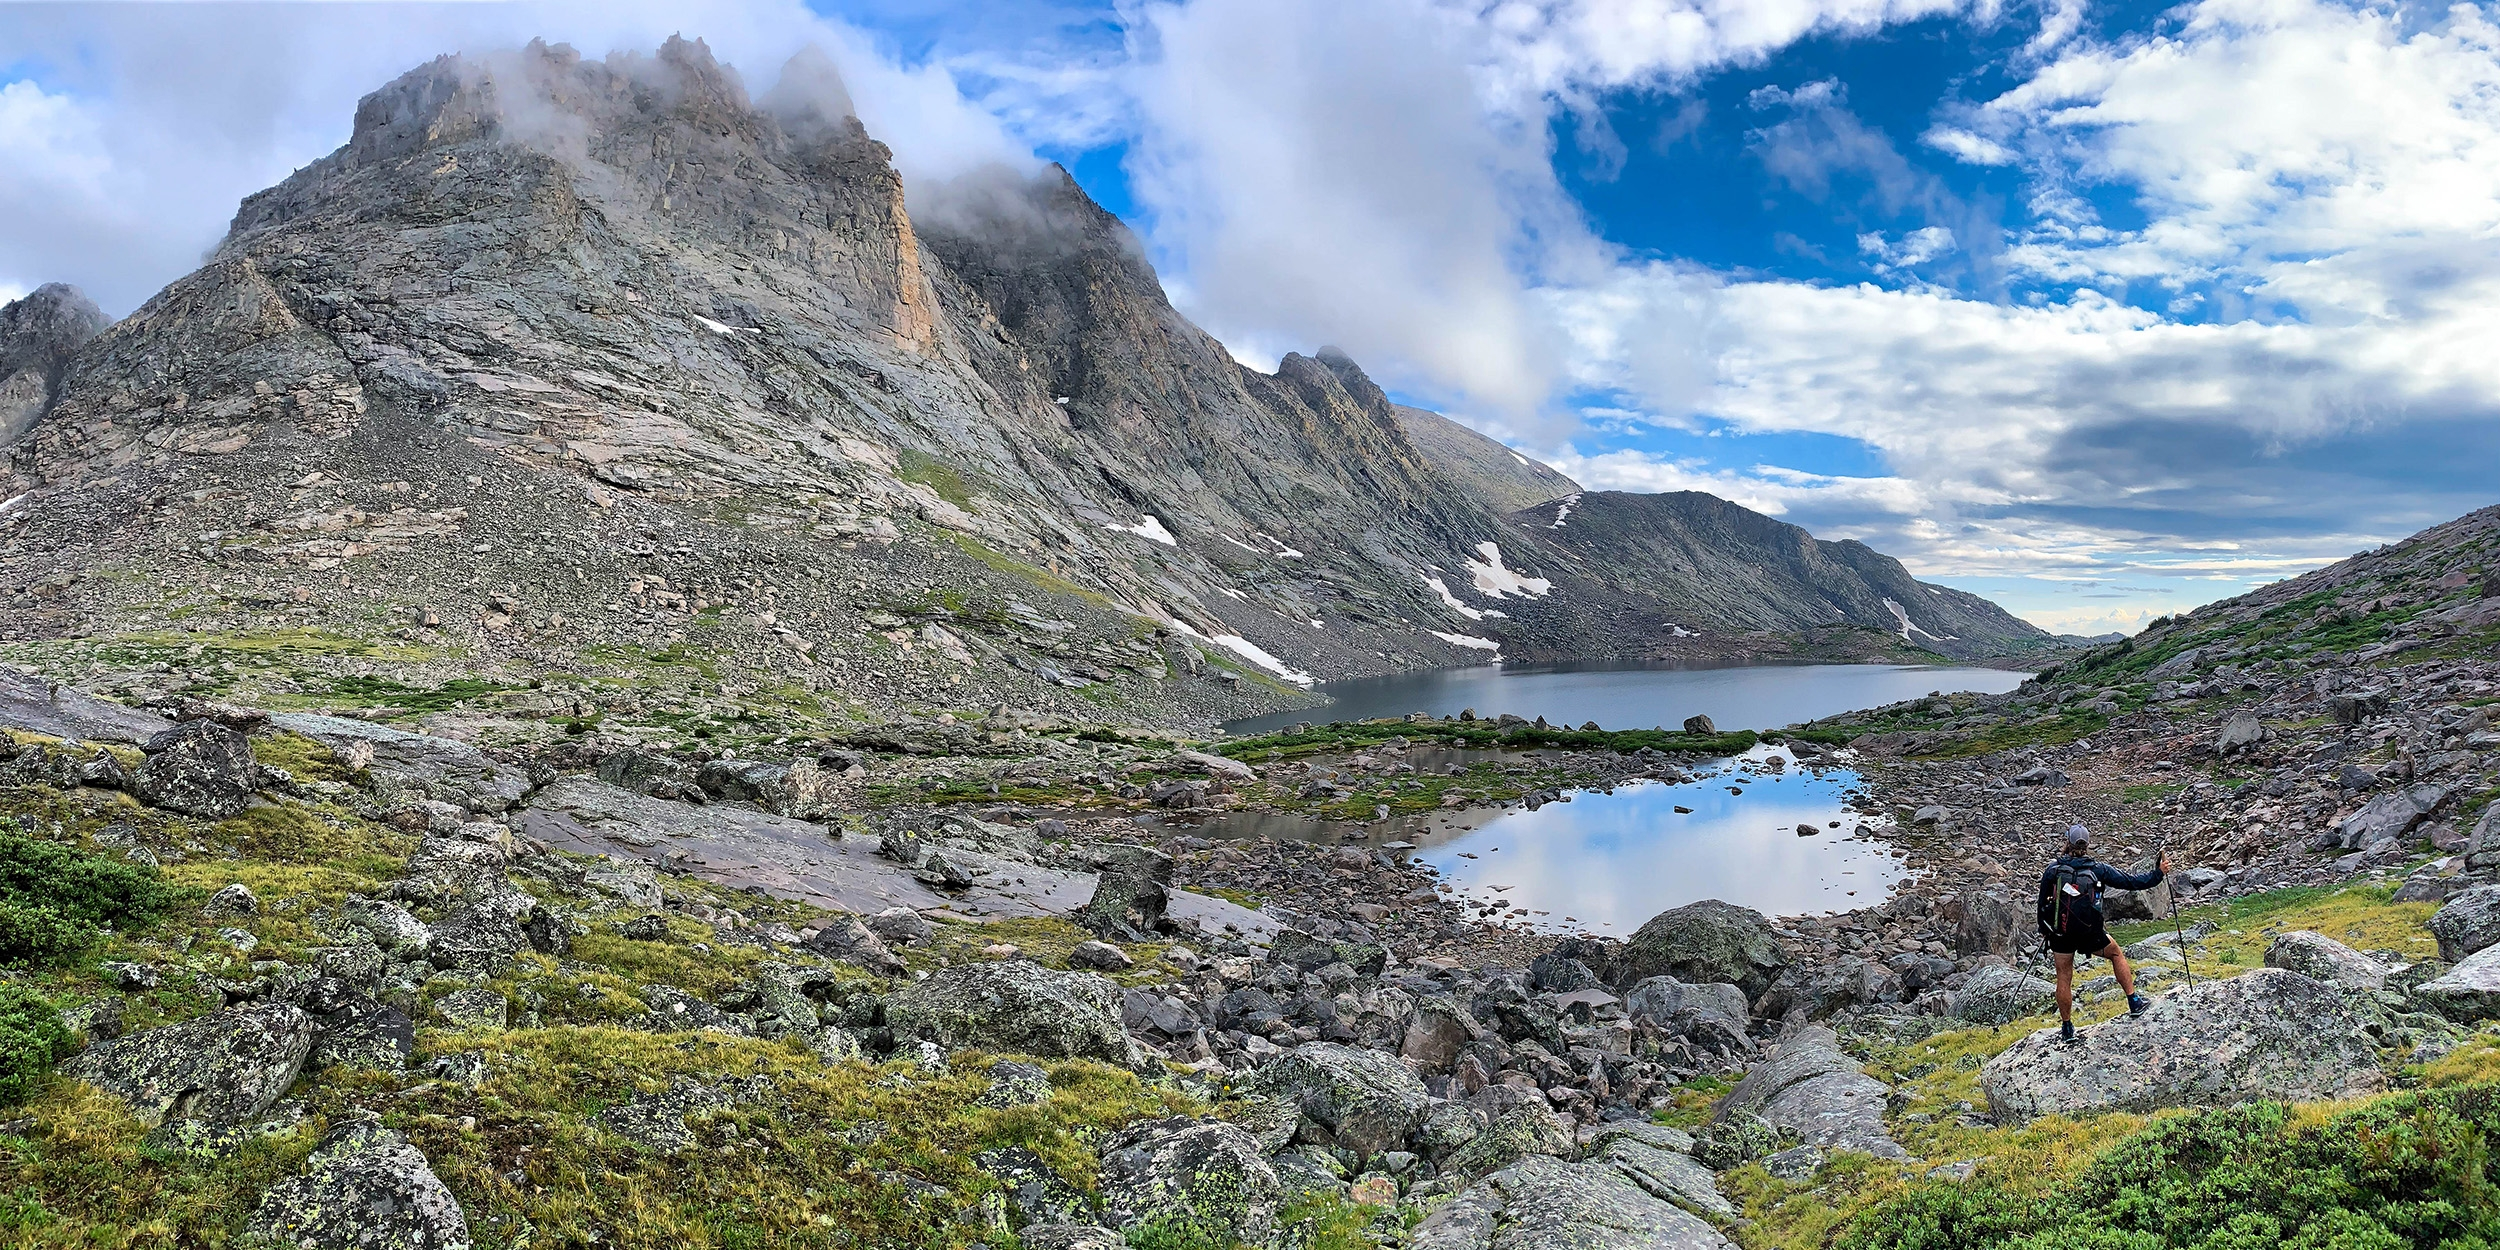 The Wind River High Route: A Fully Incomplete Q&A - The Trek